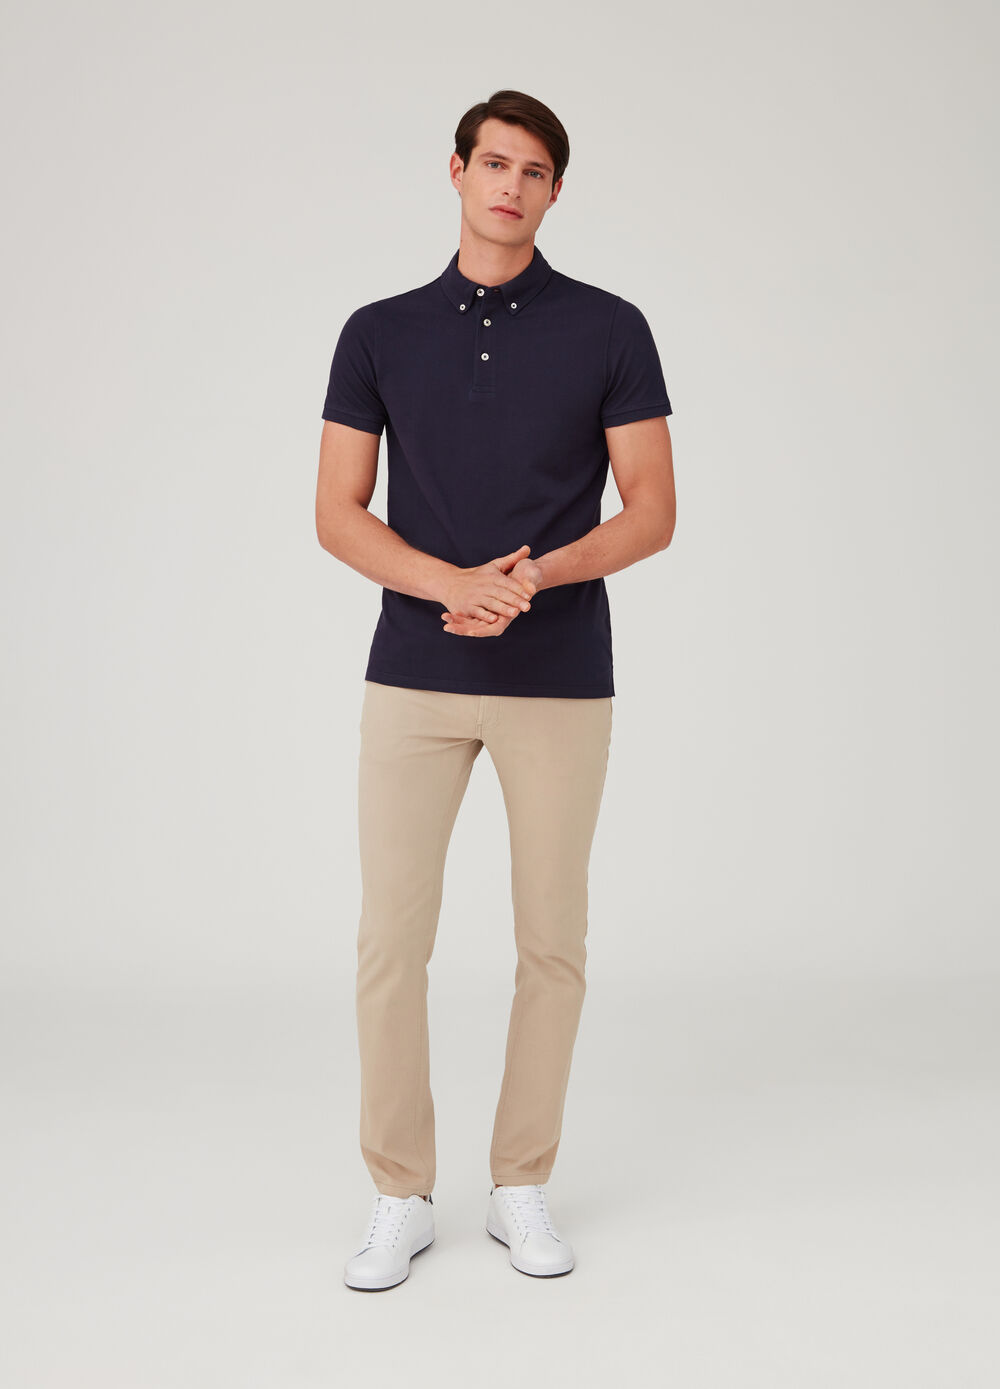 Solid colour piquet polo shirt with button-down collar